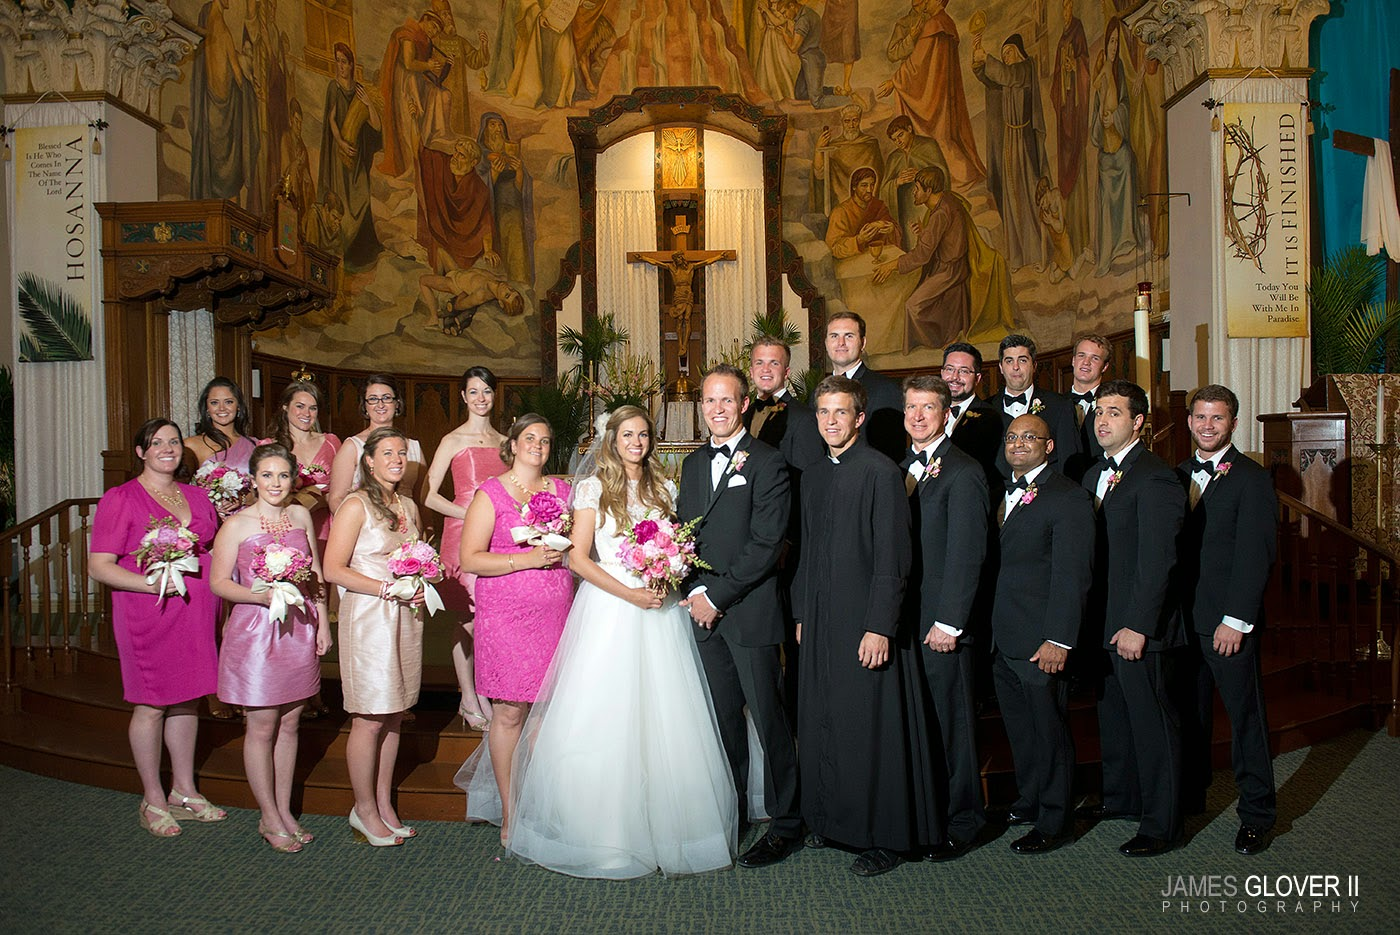 St Thomas Aquinas Catherdral Reno Wedding // James Glover Photography // Take the Cake Event Planning